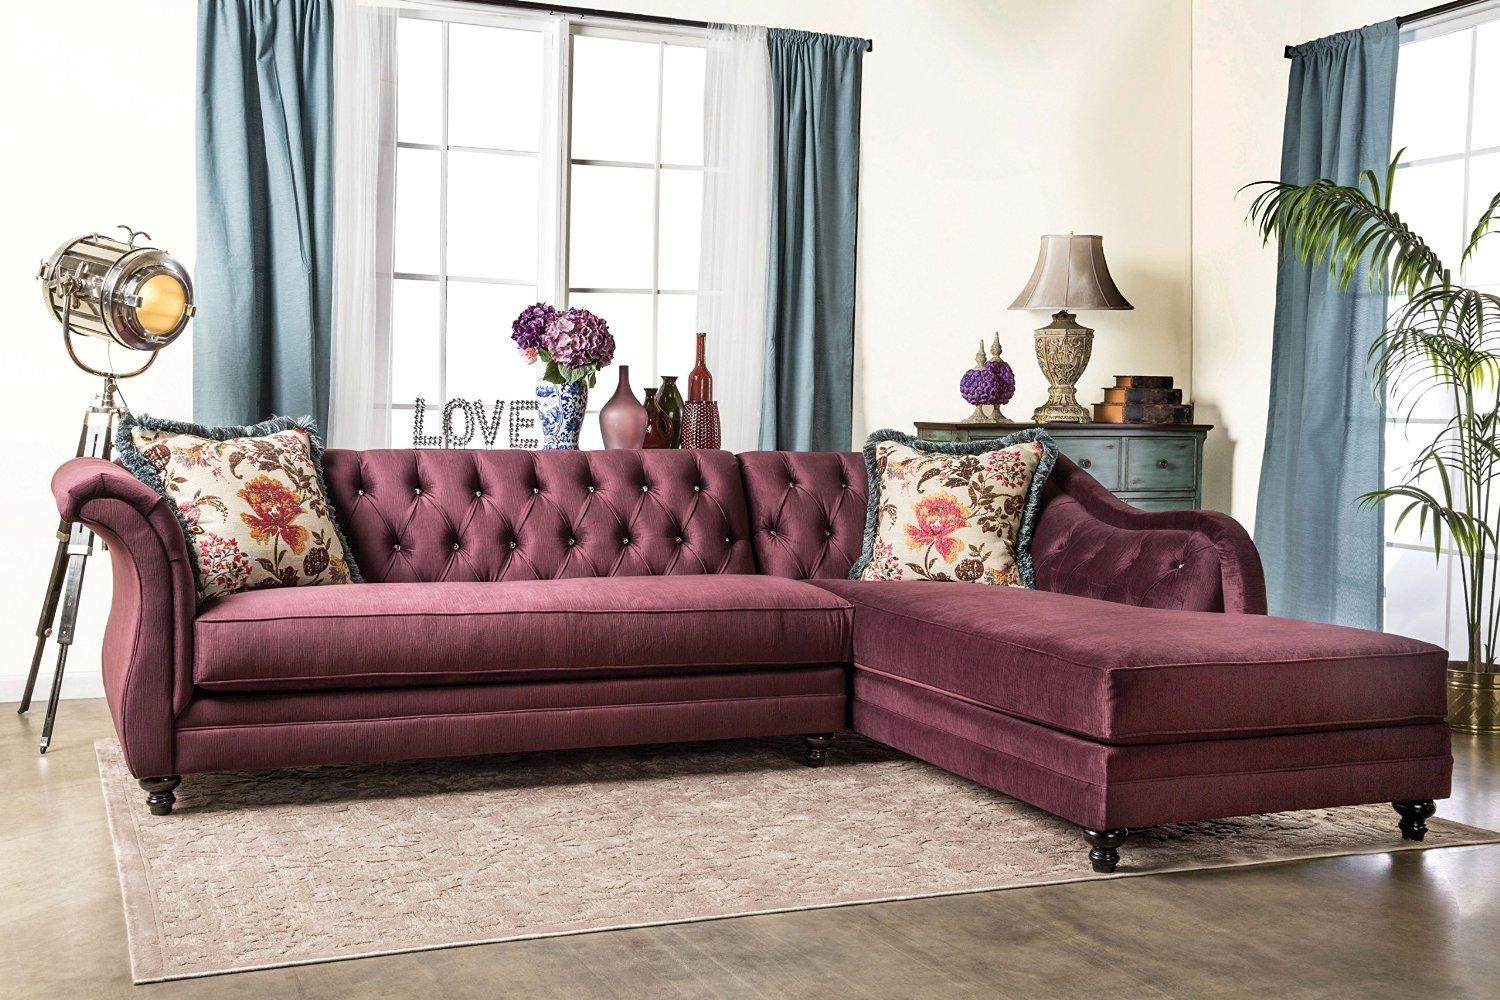 25 Best Chesterfield Sofas To Buy In 2017 inside Tufted Sectional Sofa With Chaise